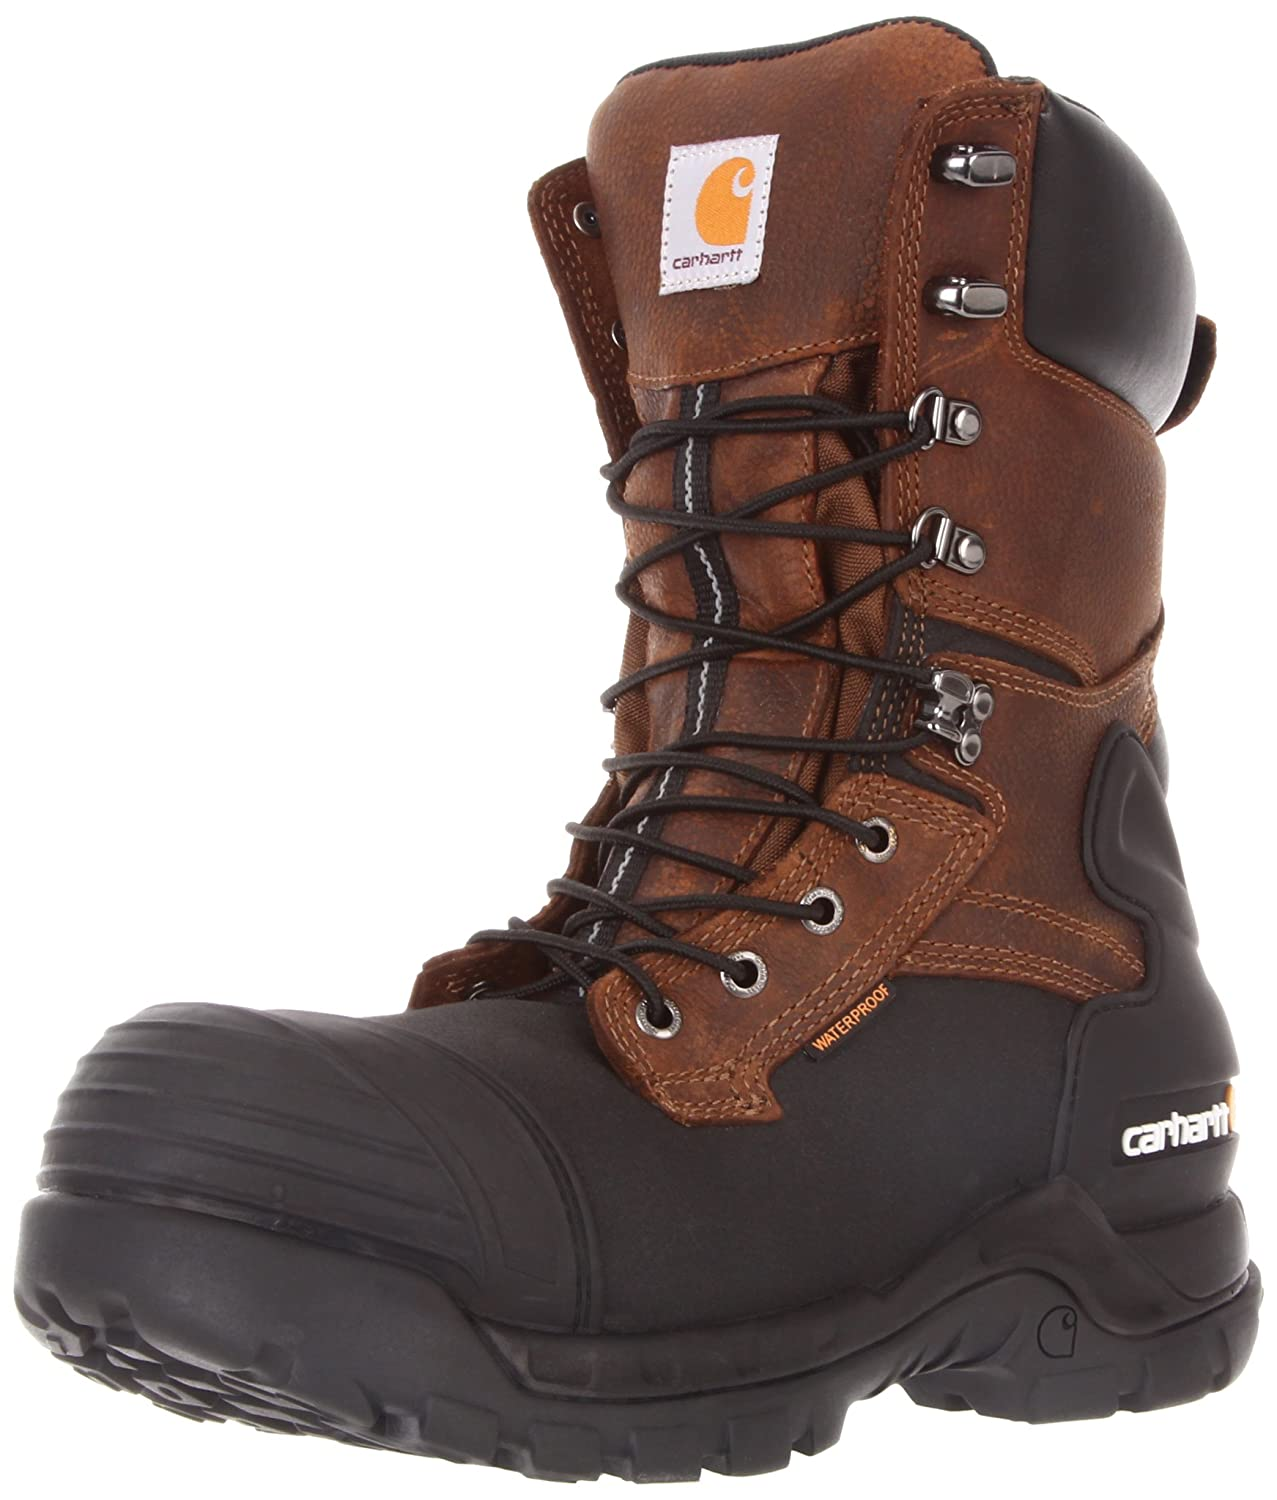 Carhartt Men's 10